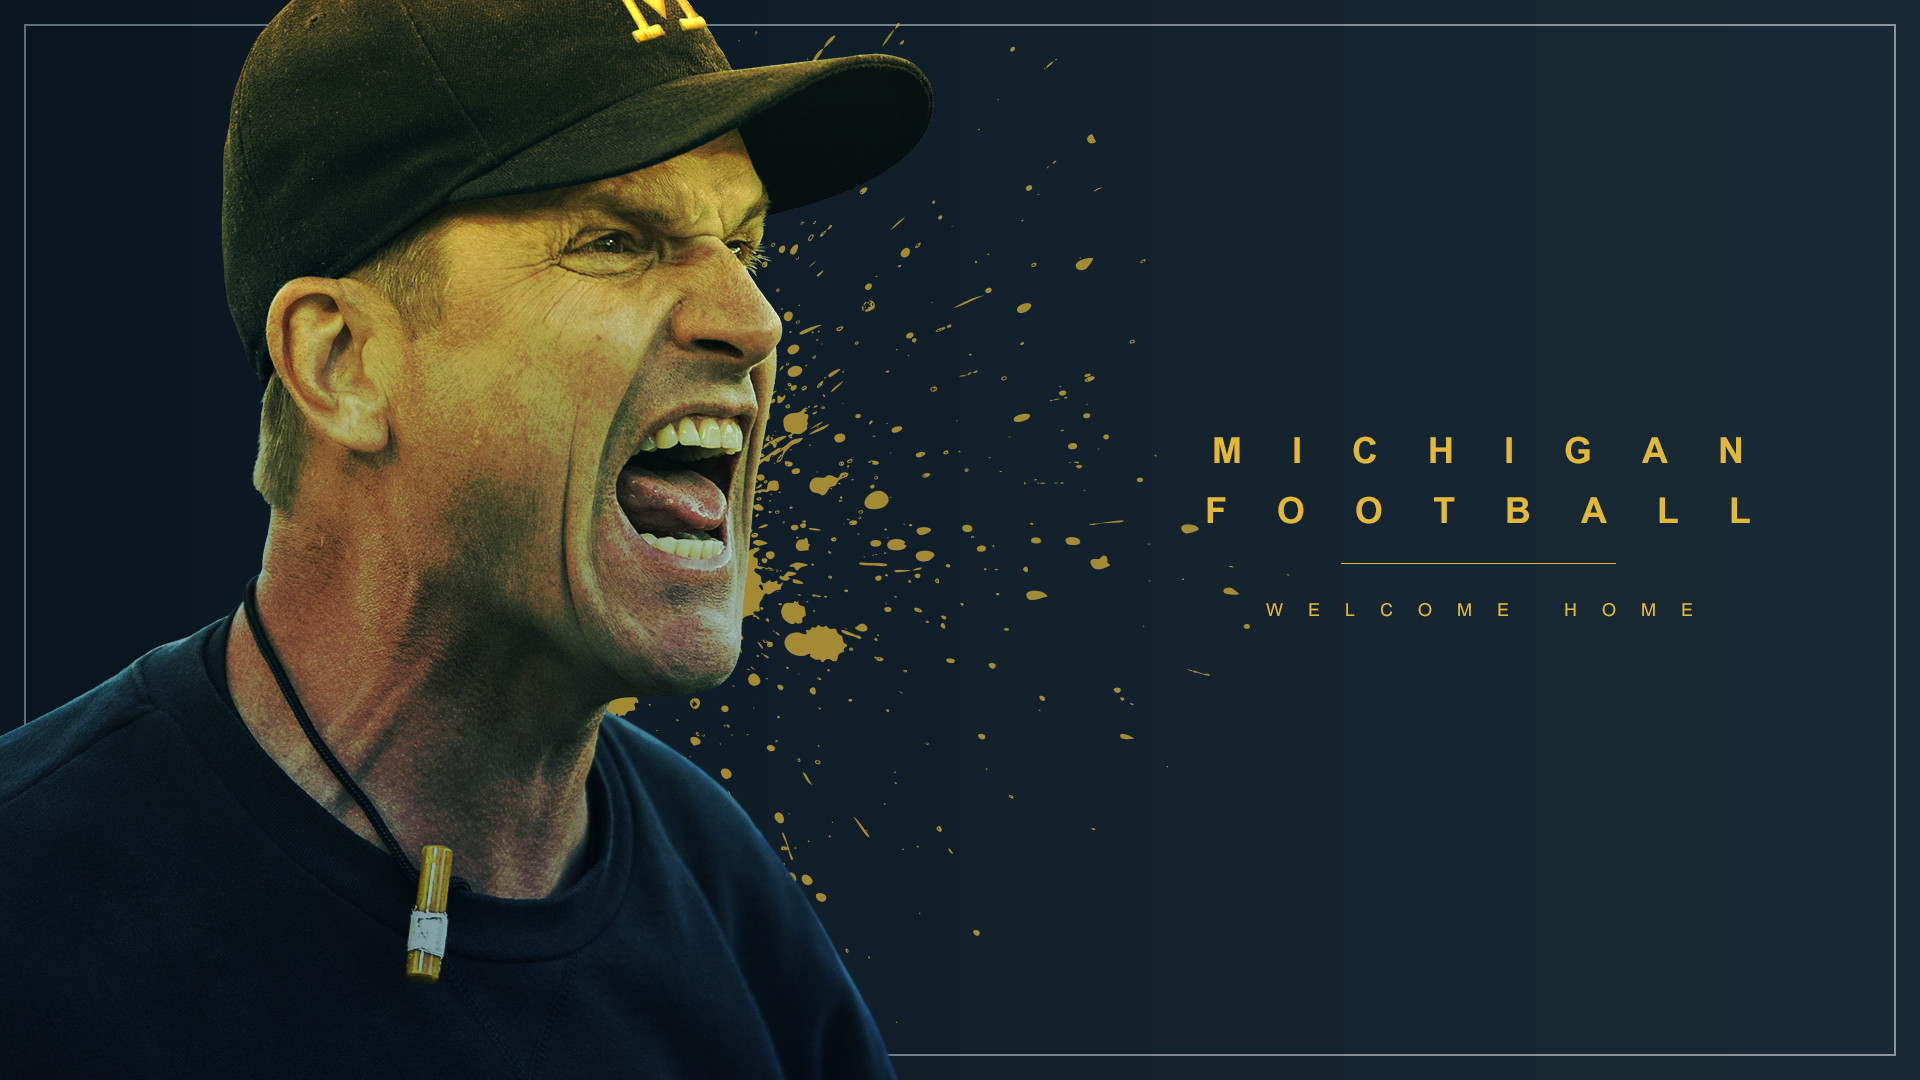 1920x1080 Michigan Football Wallpaper x | HD Wallpapers | Pinterest | Football  wallpaper and Wallpaper